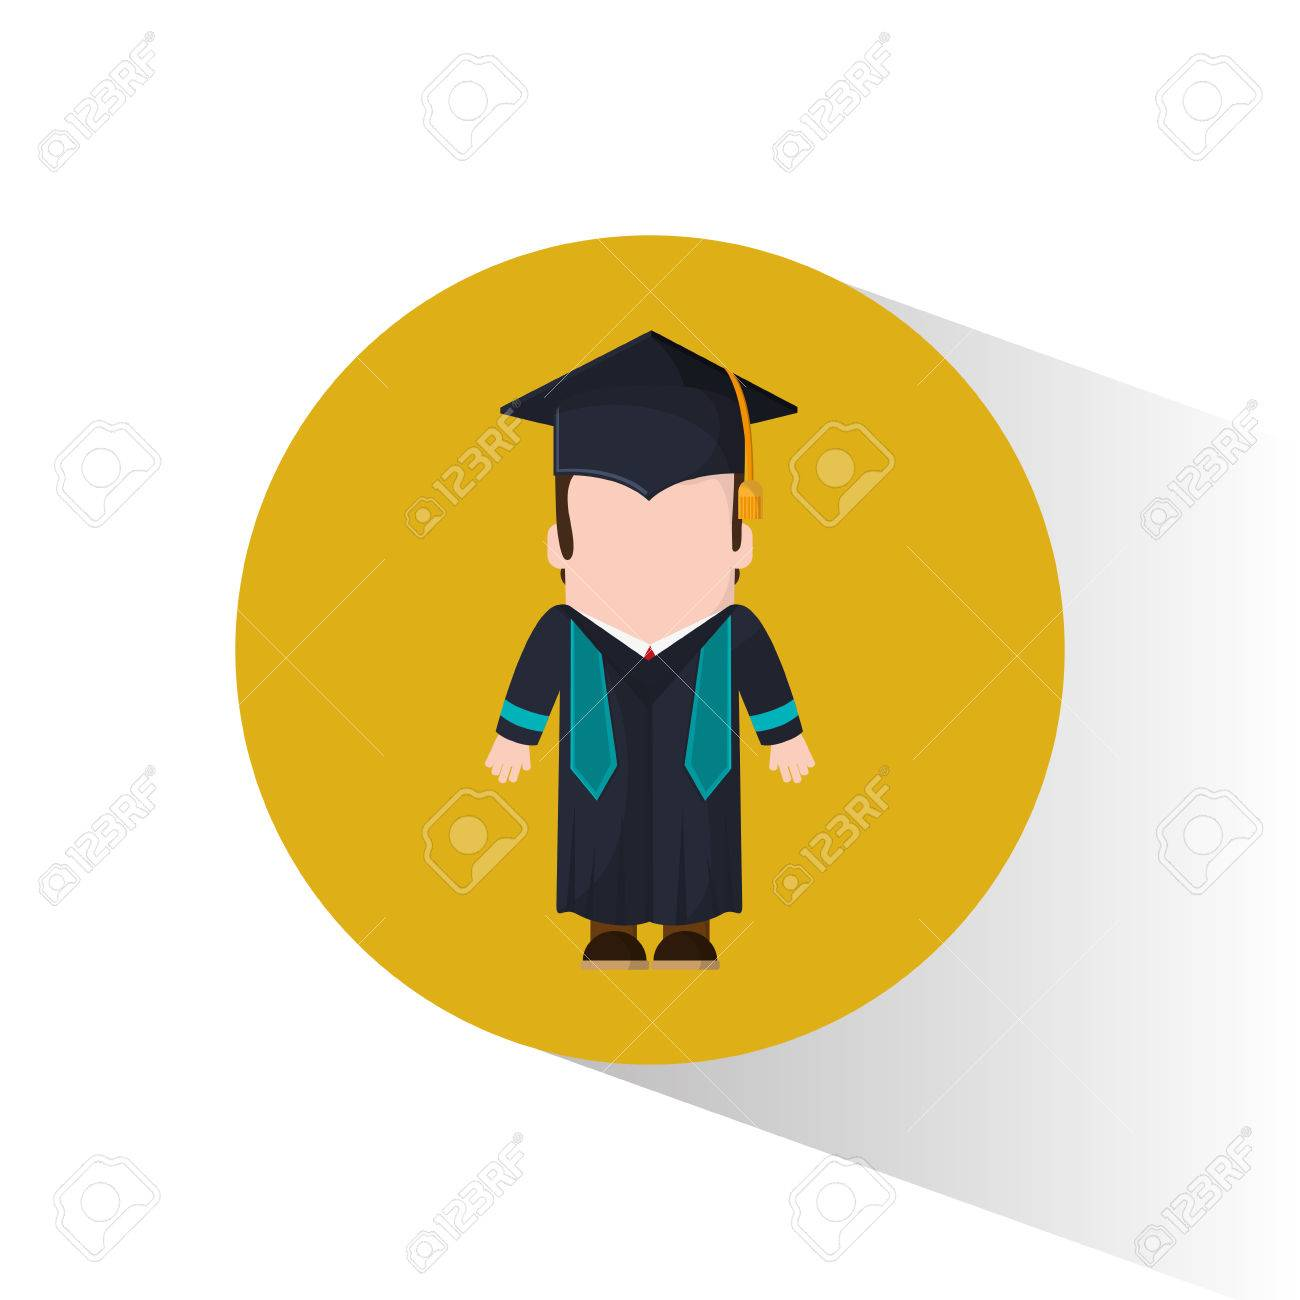 Graduate Student Cap And Gown Vector Illustration Royalty Free ...